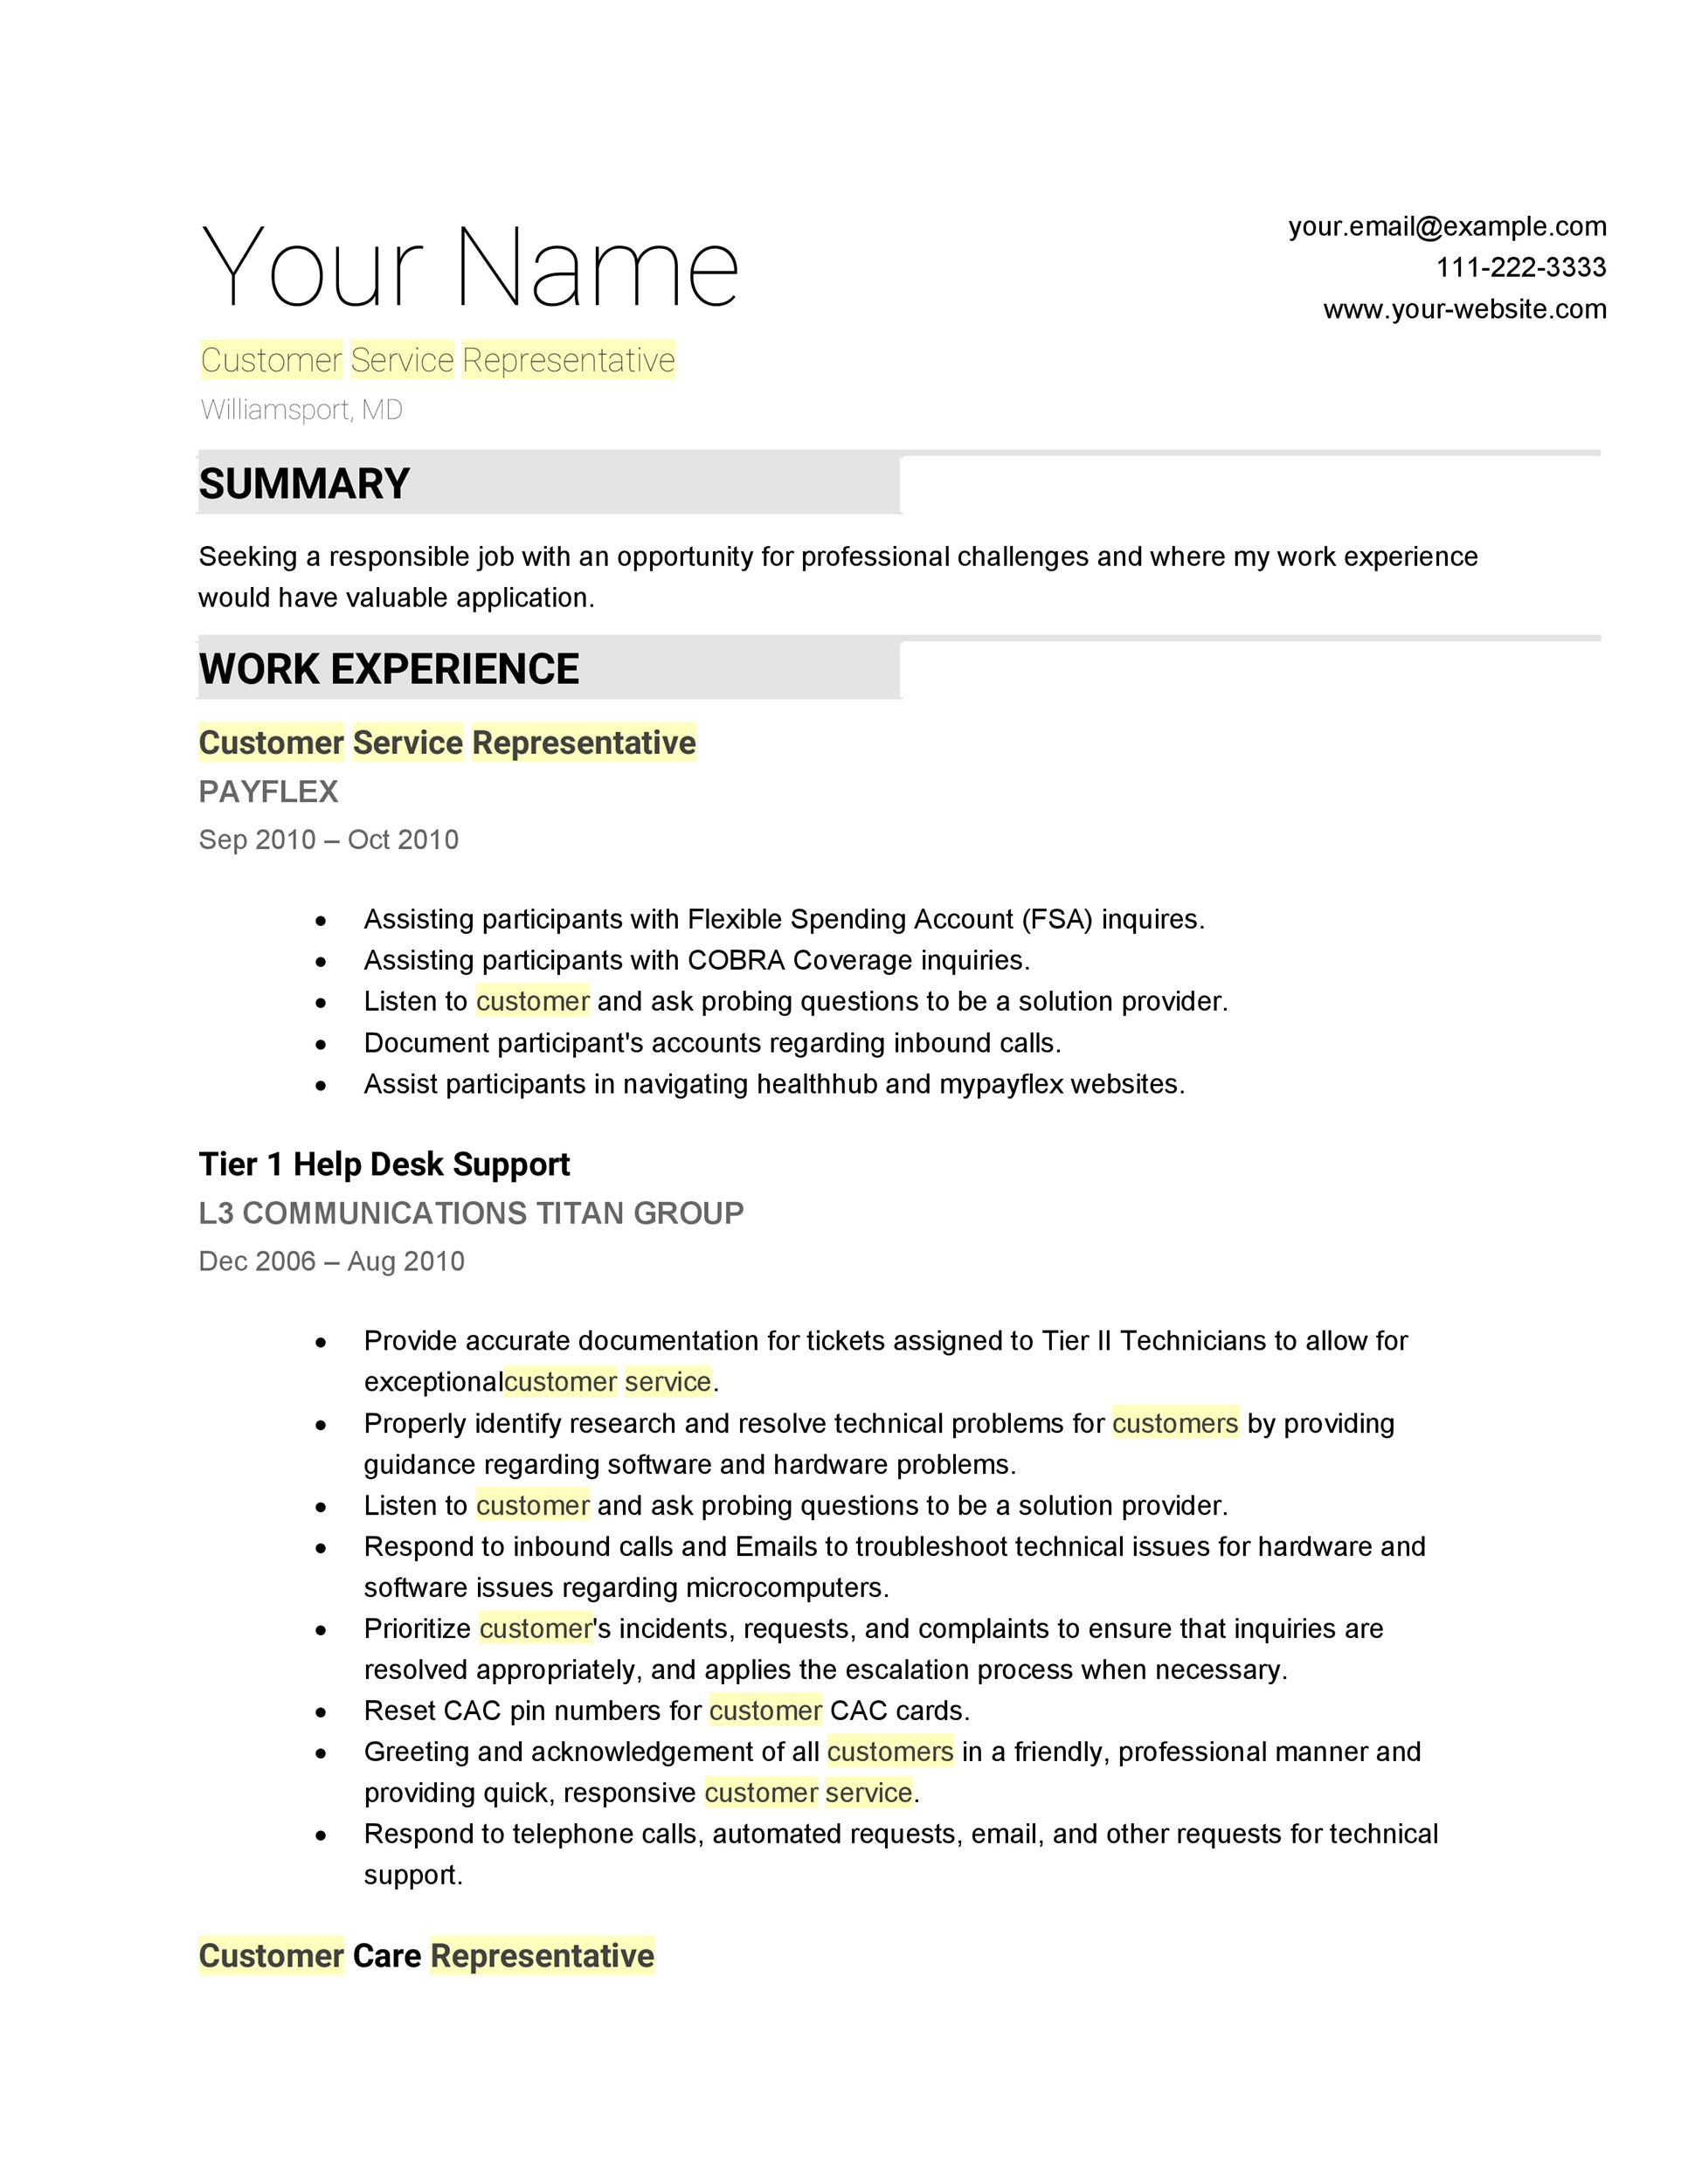 30+ Customer Service Resume Examples - Template Lab - Sample Of Resume Templates